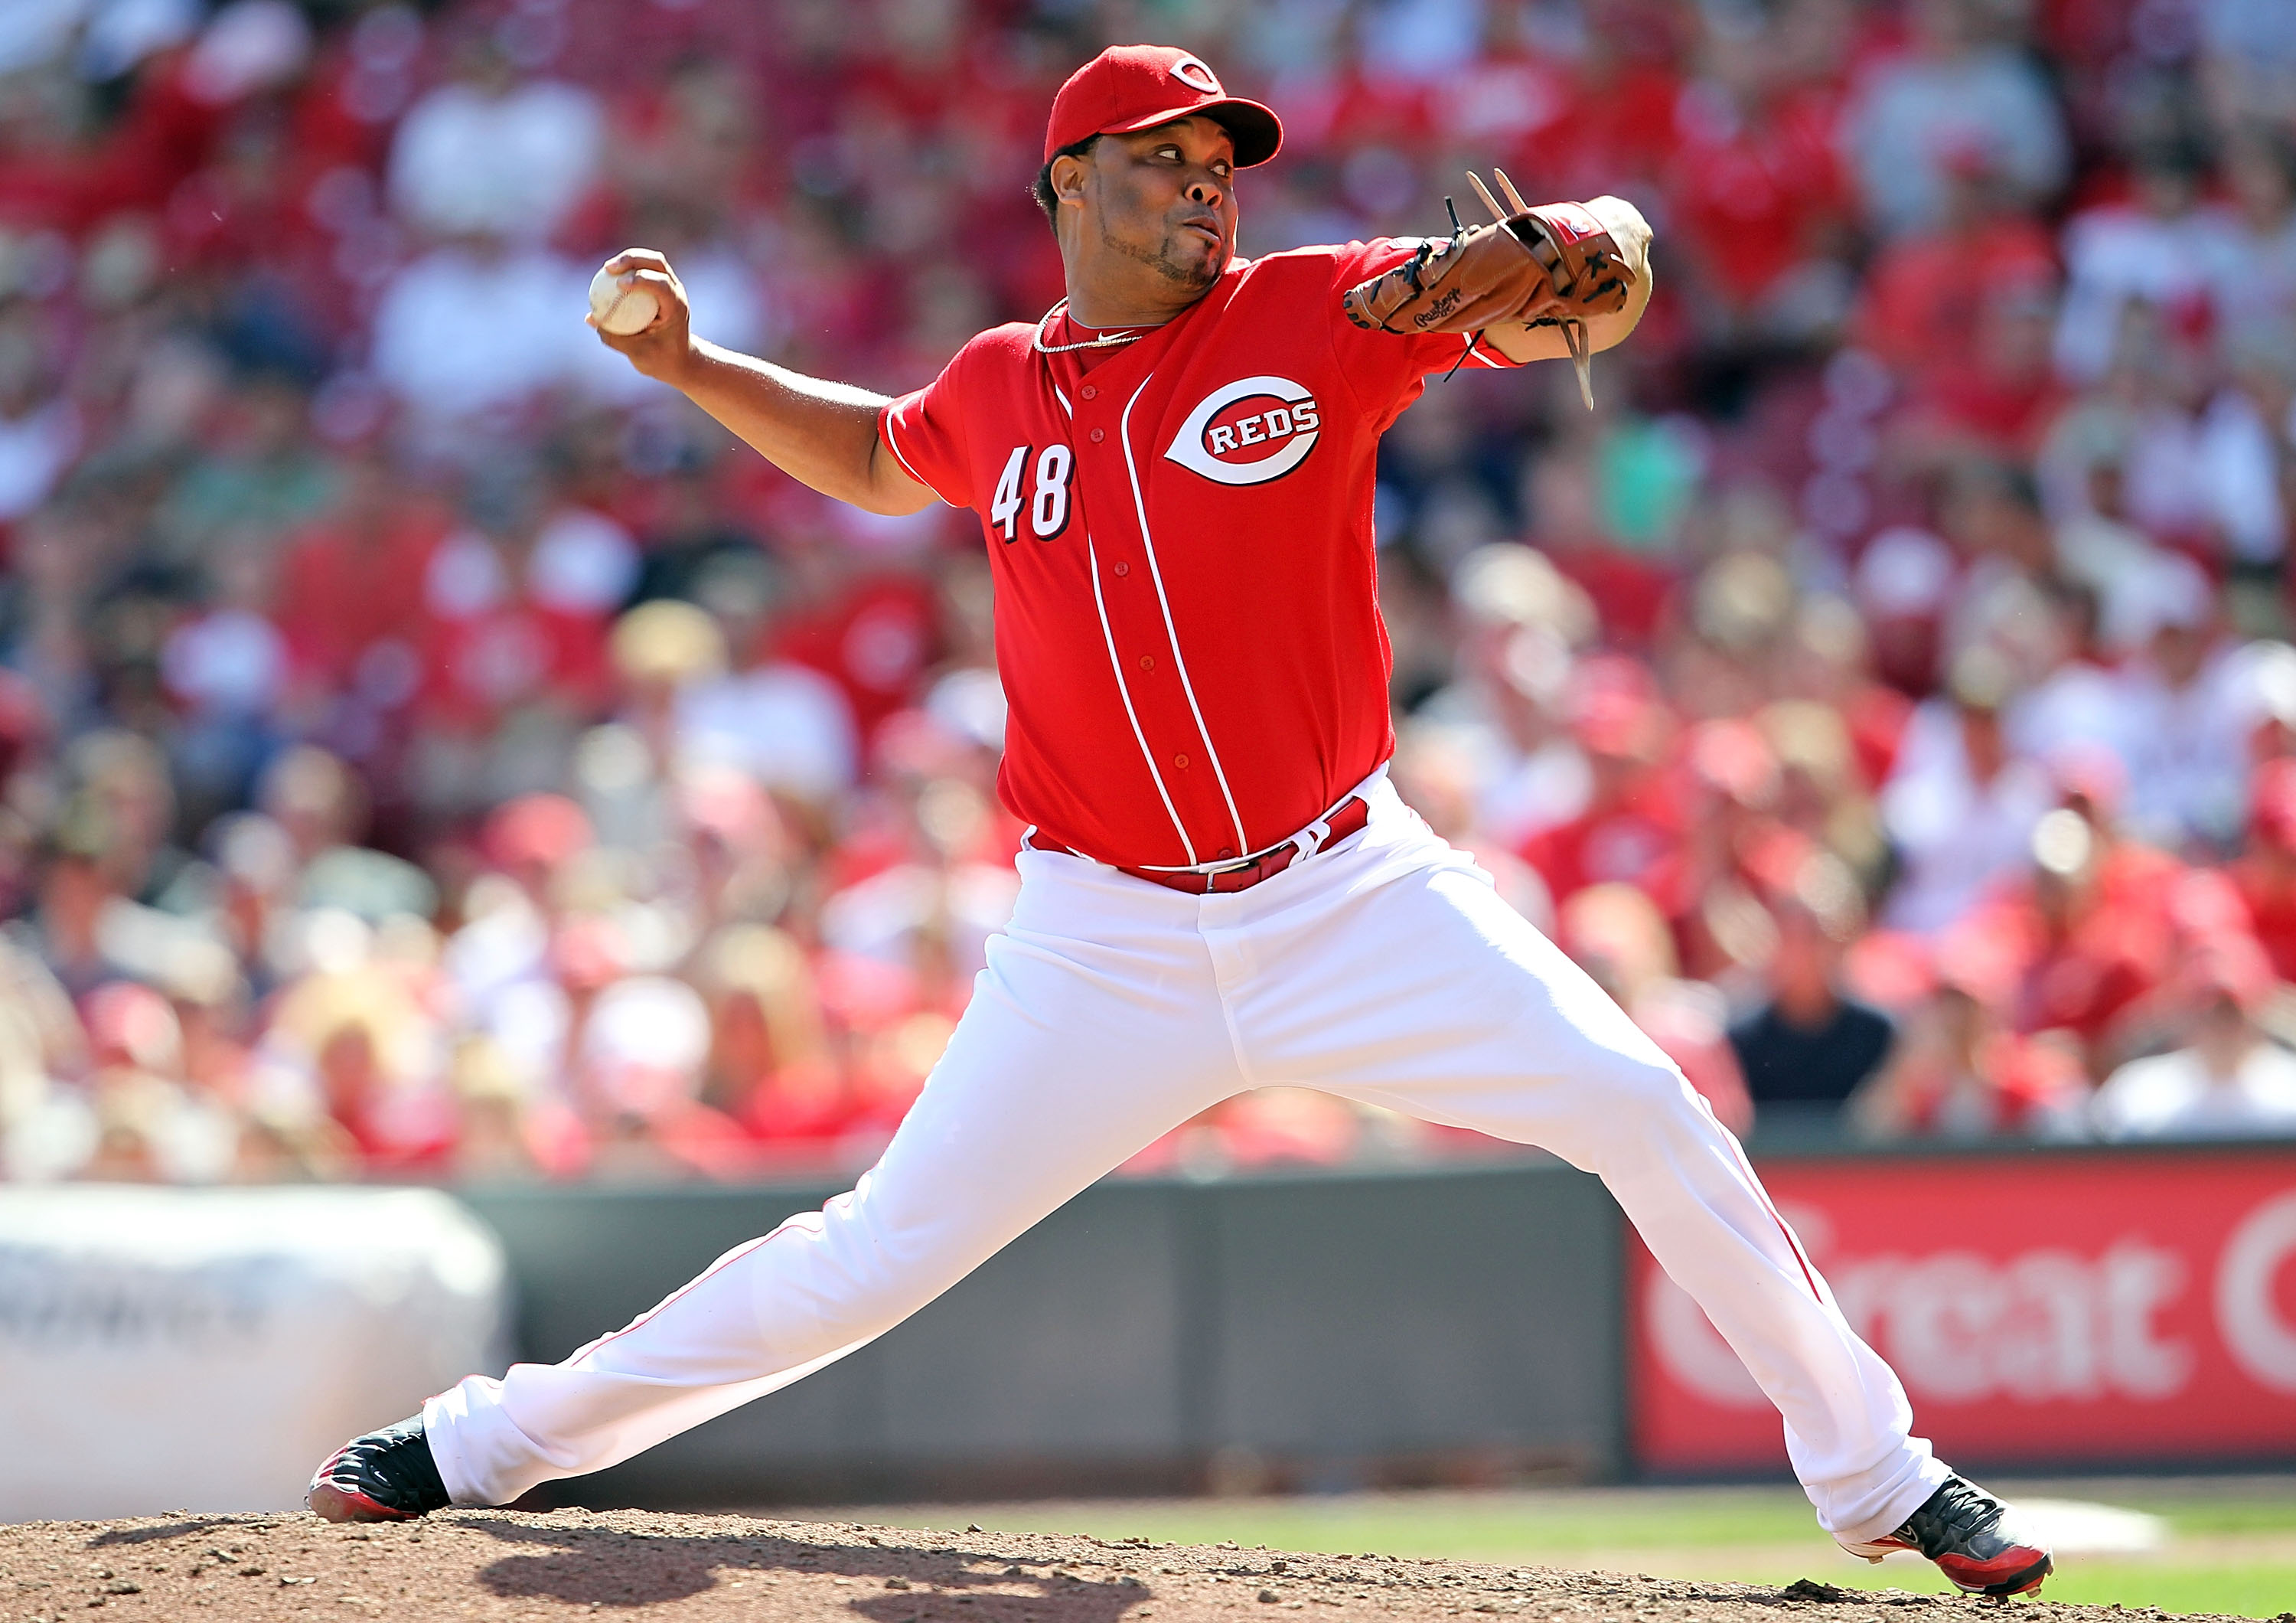 CINCINNATI - SEPTEMBER 12:  Francisco Cordero #48 of the Cincinnati Reds throws a pitch during the game against the Pittsburgh Pirates at Great American Ballpark on September 12, 2010 in Cincinnati, Ohio.  (Photo by Andy Lyons/Getty Images)